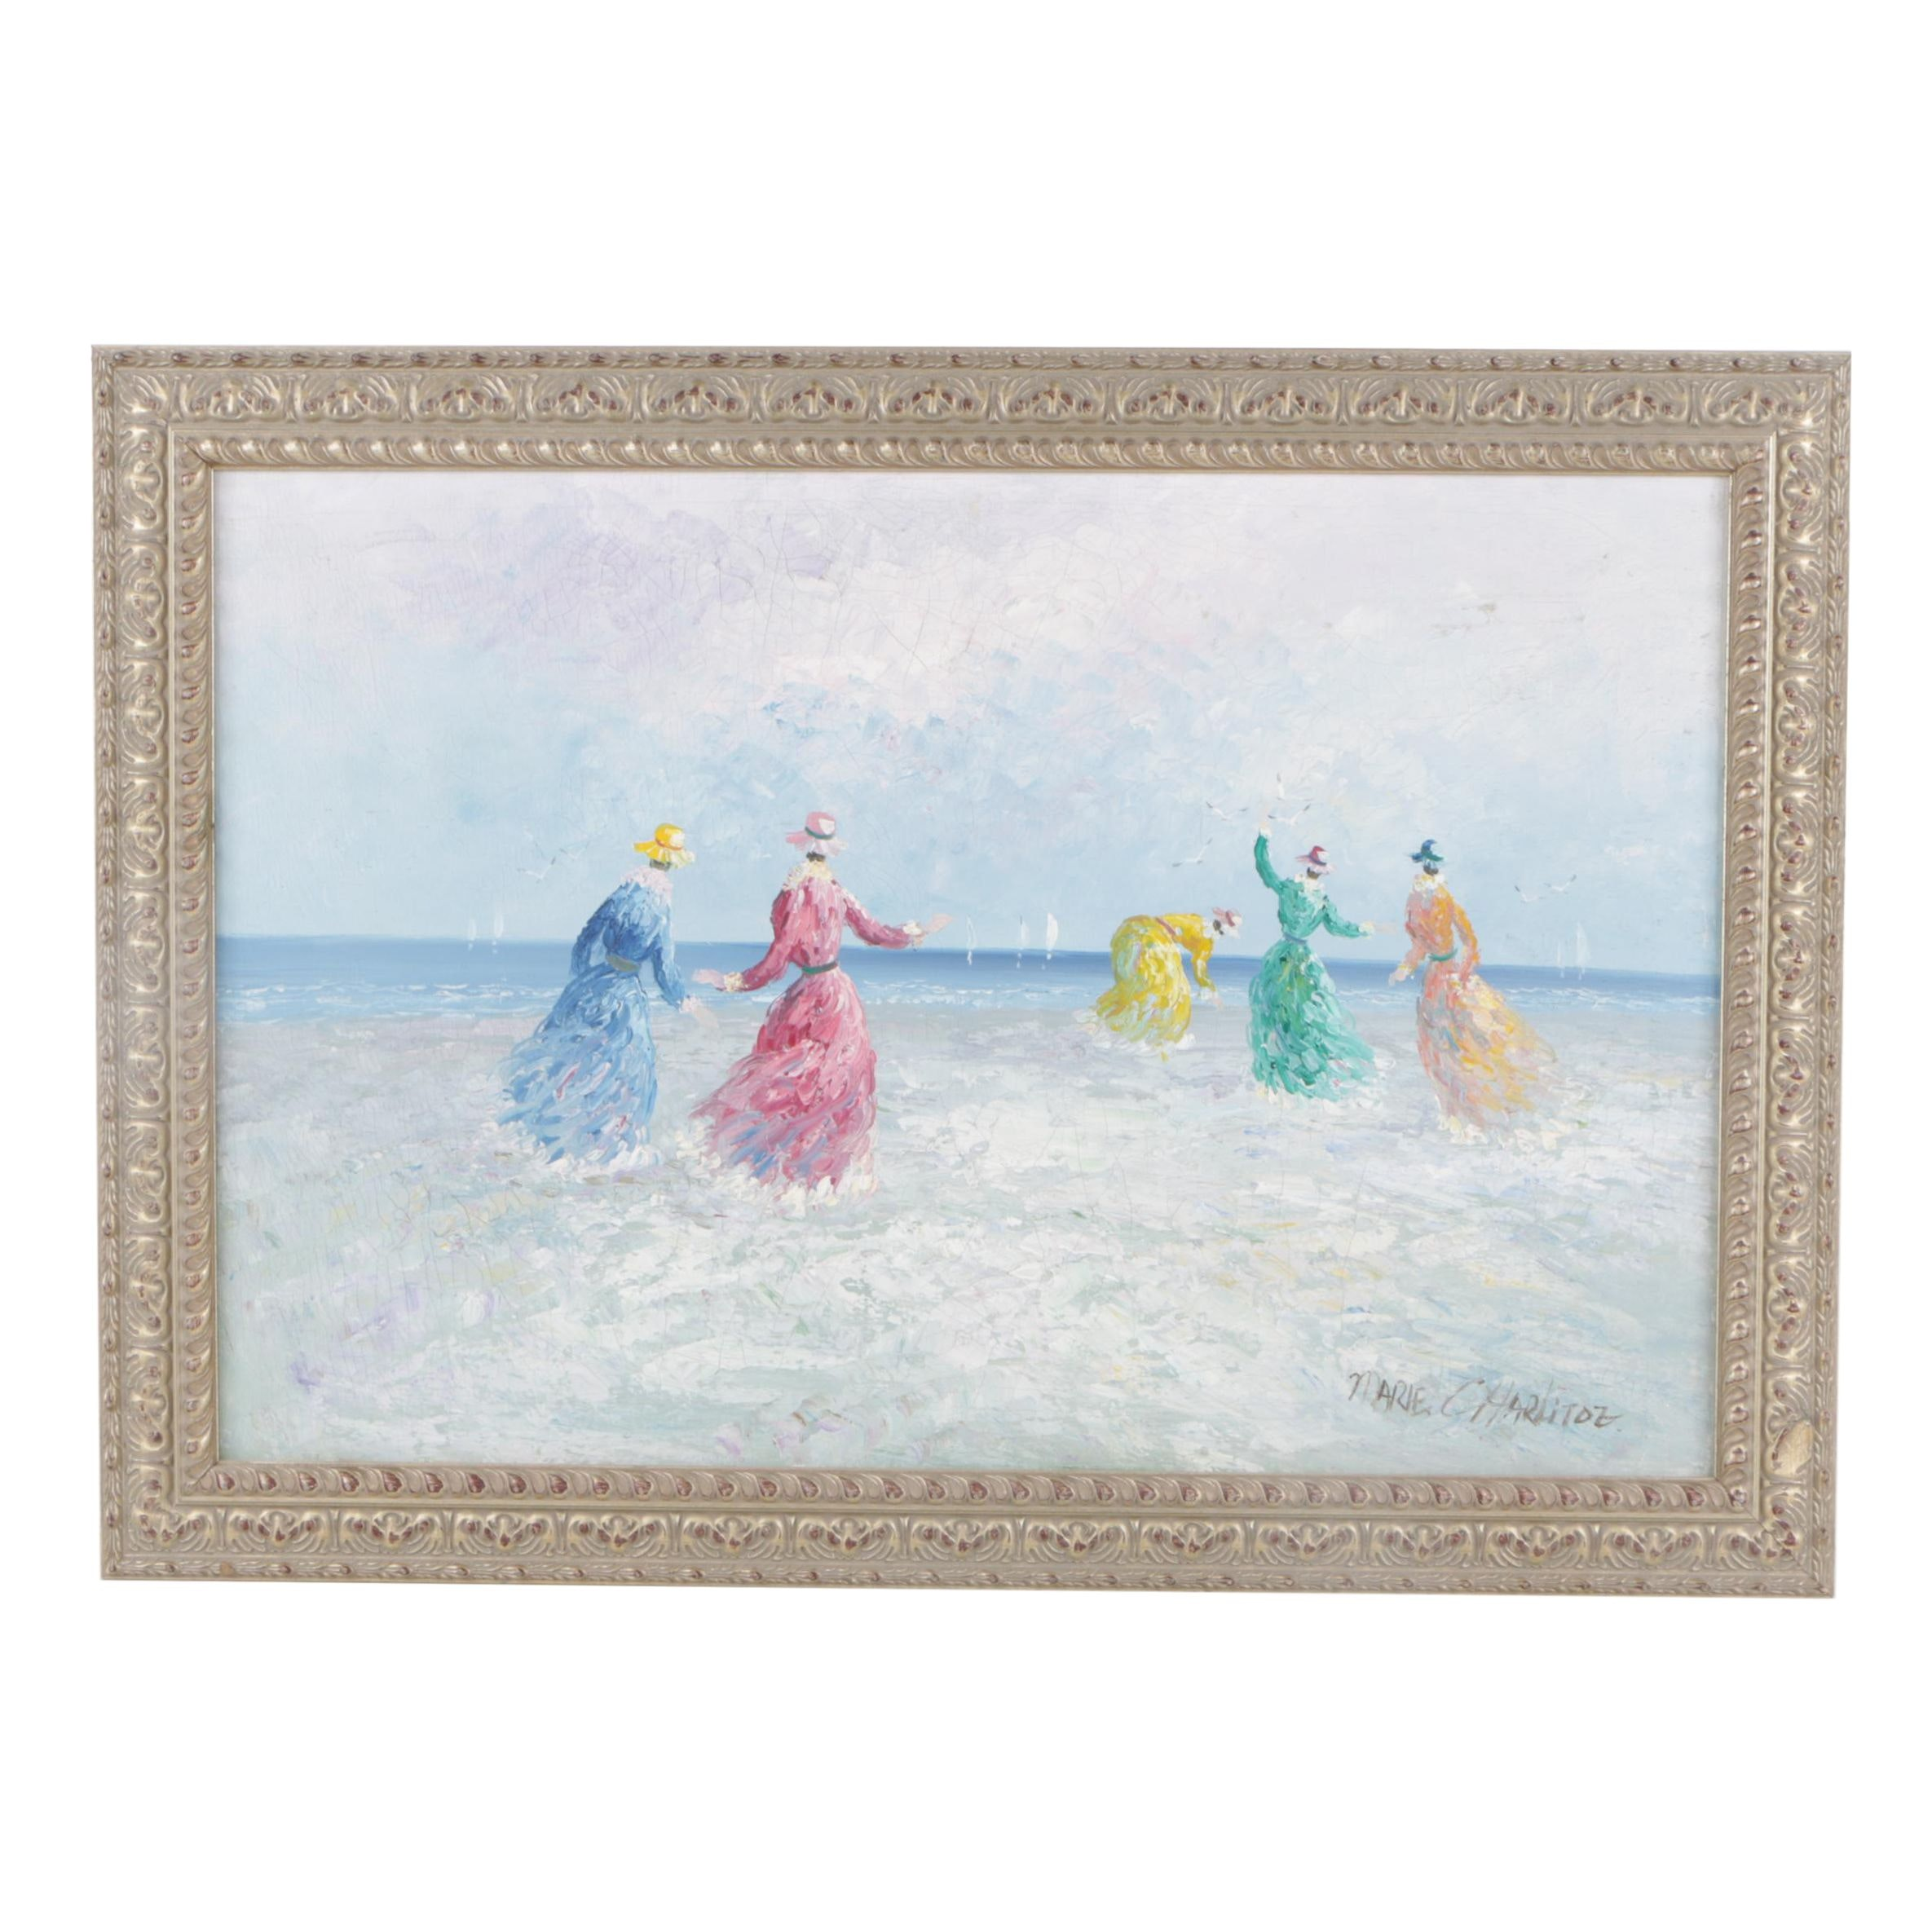 Oil Painting of a Whimsical Beach Landscape